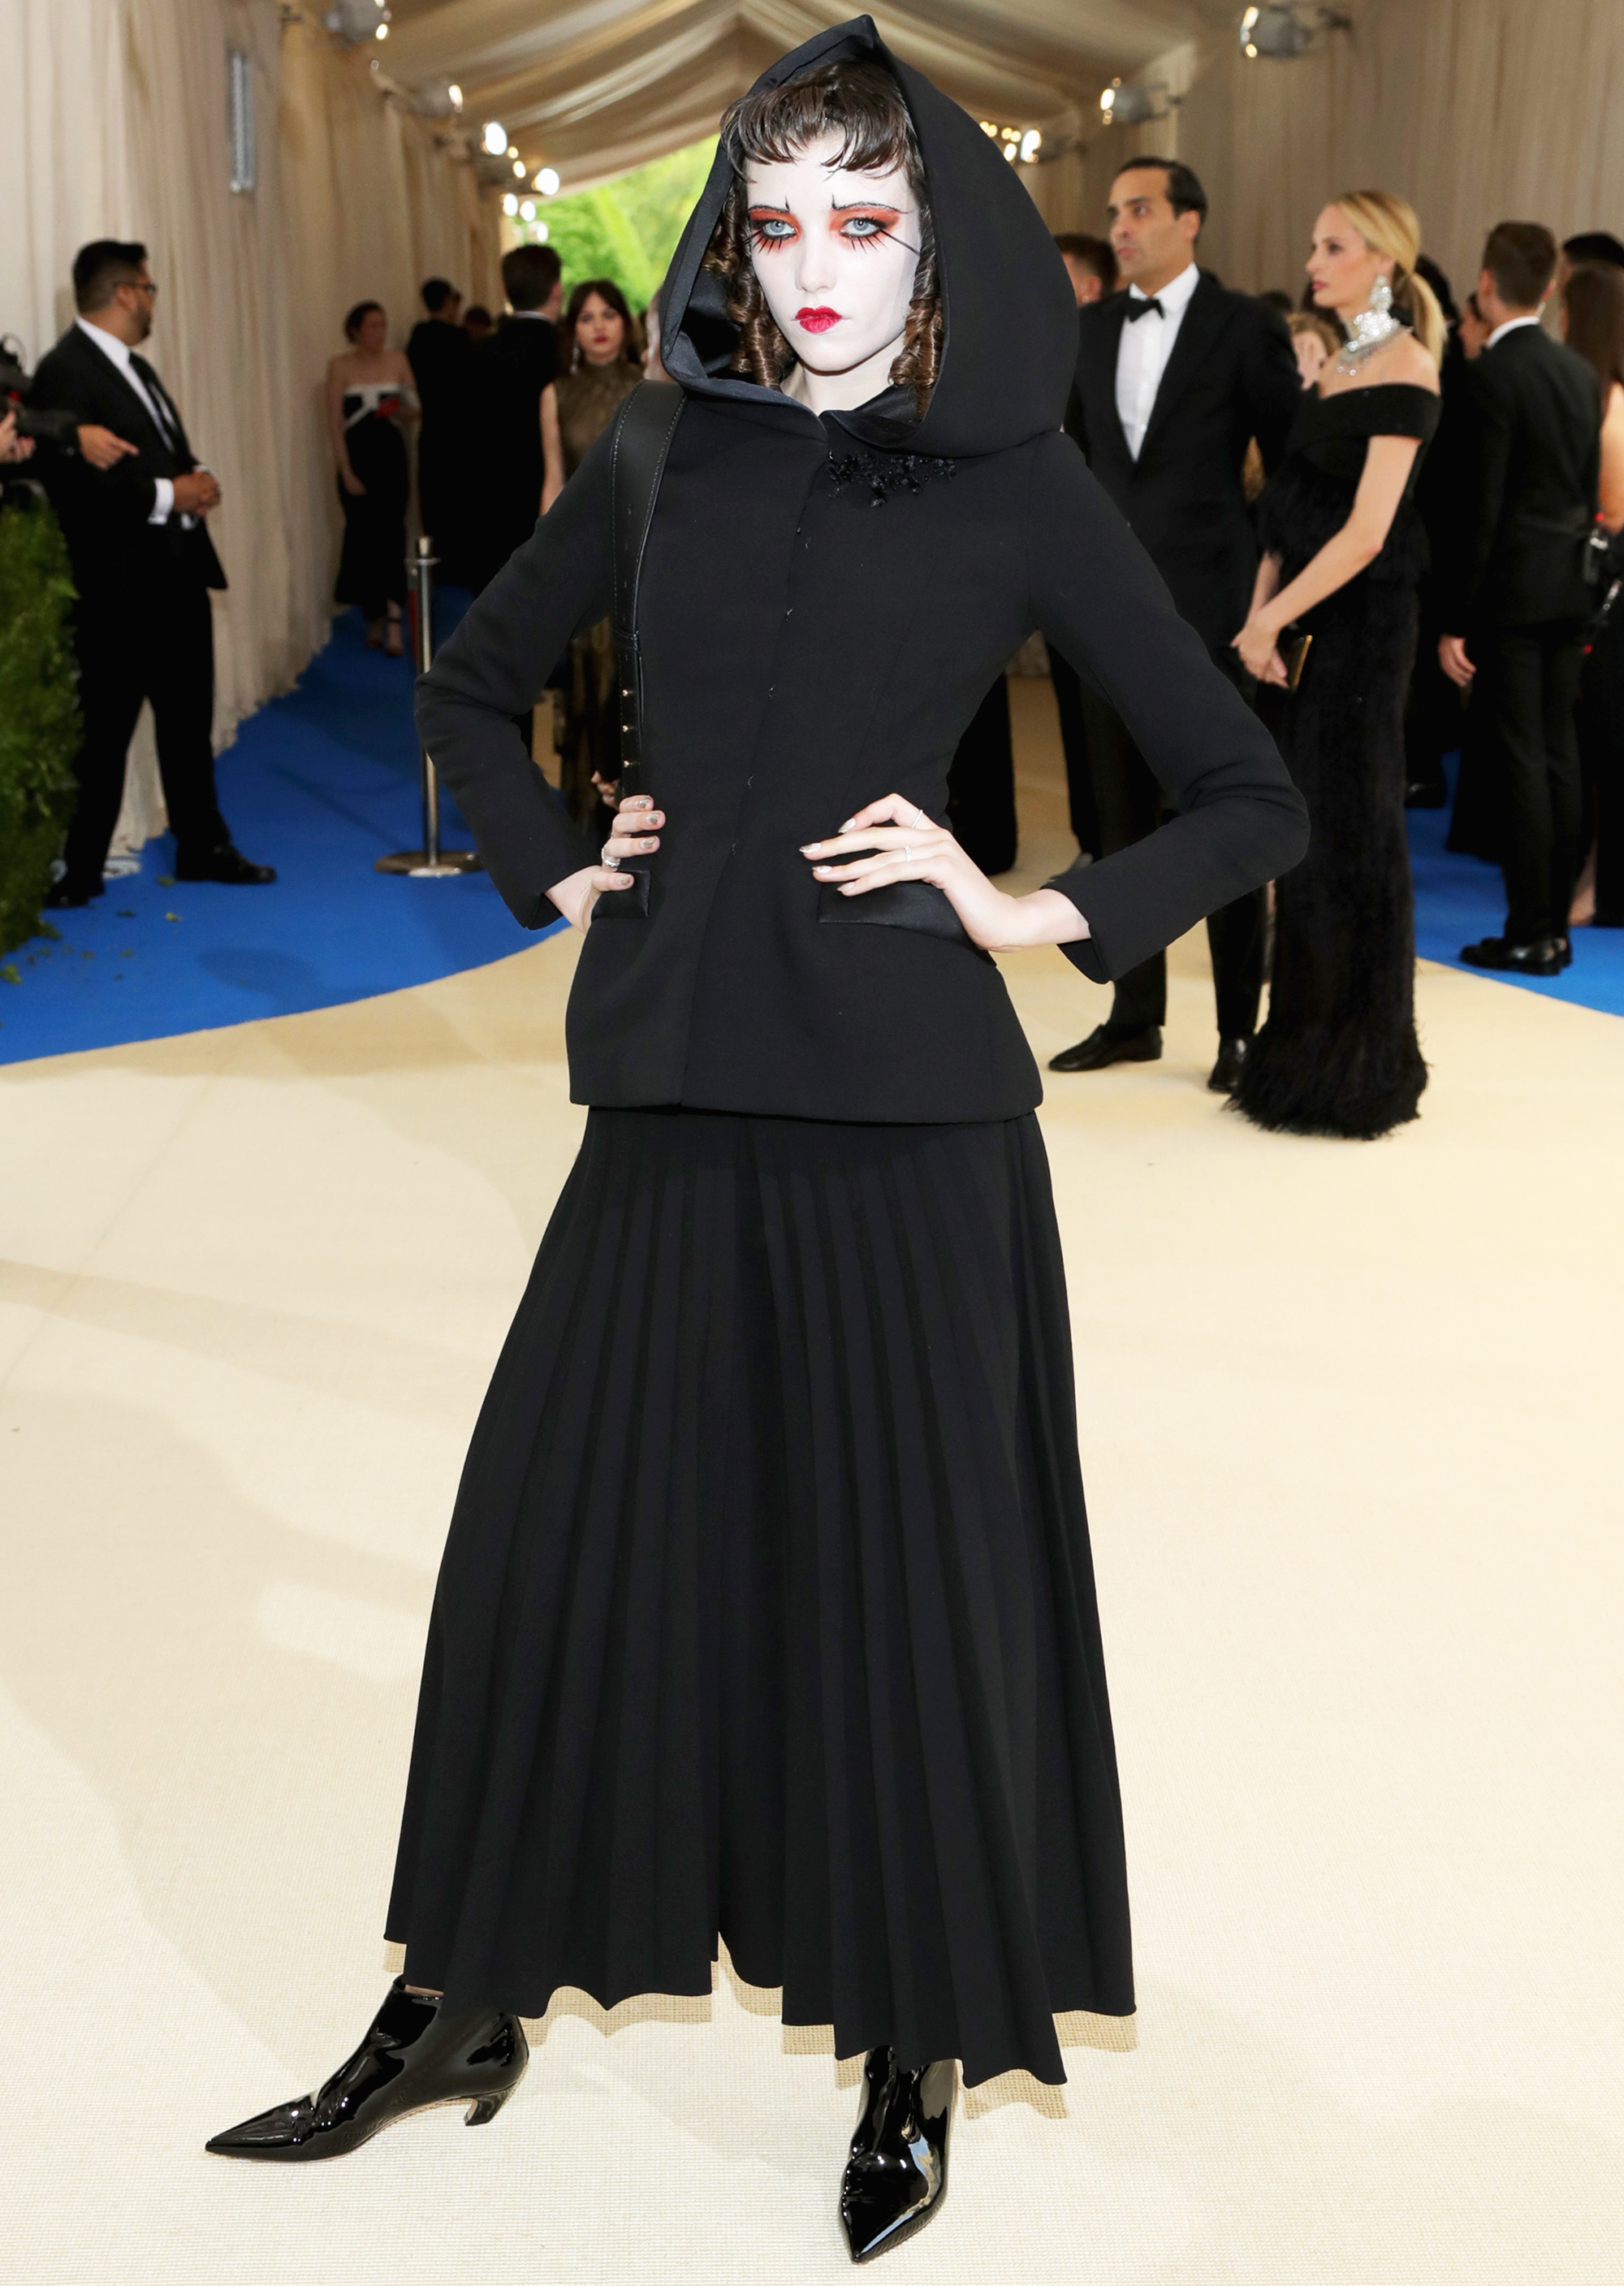 Grace Hartzel attends The Metropolitan Museum of Art's Costume Institute benefit gala celebrating the opening of the Rei Kawakubo/Comme des Garçons: Art of the In-Between exhibition in New York City, on May 1, 2017.